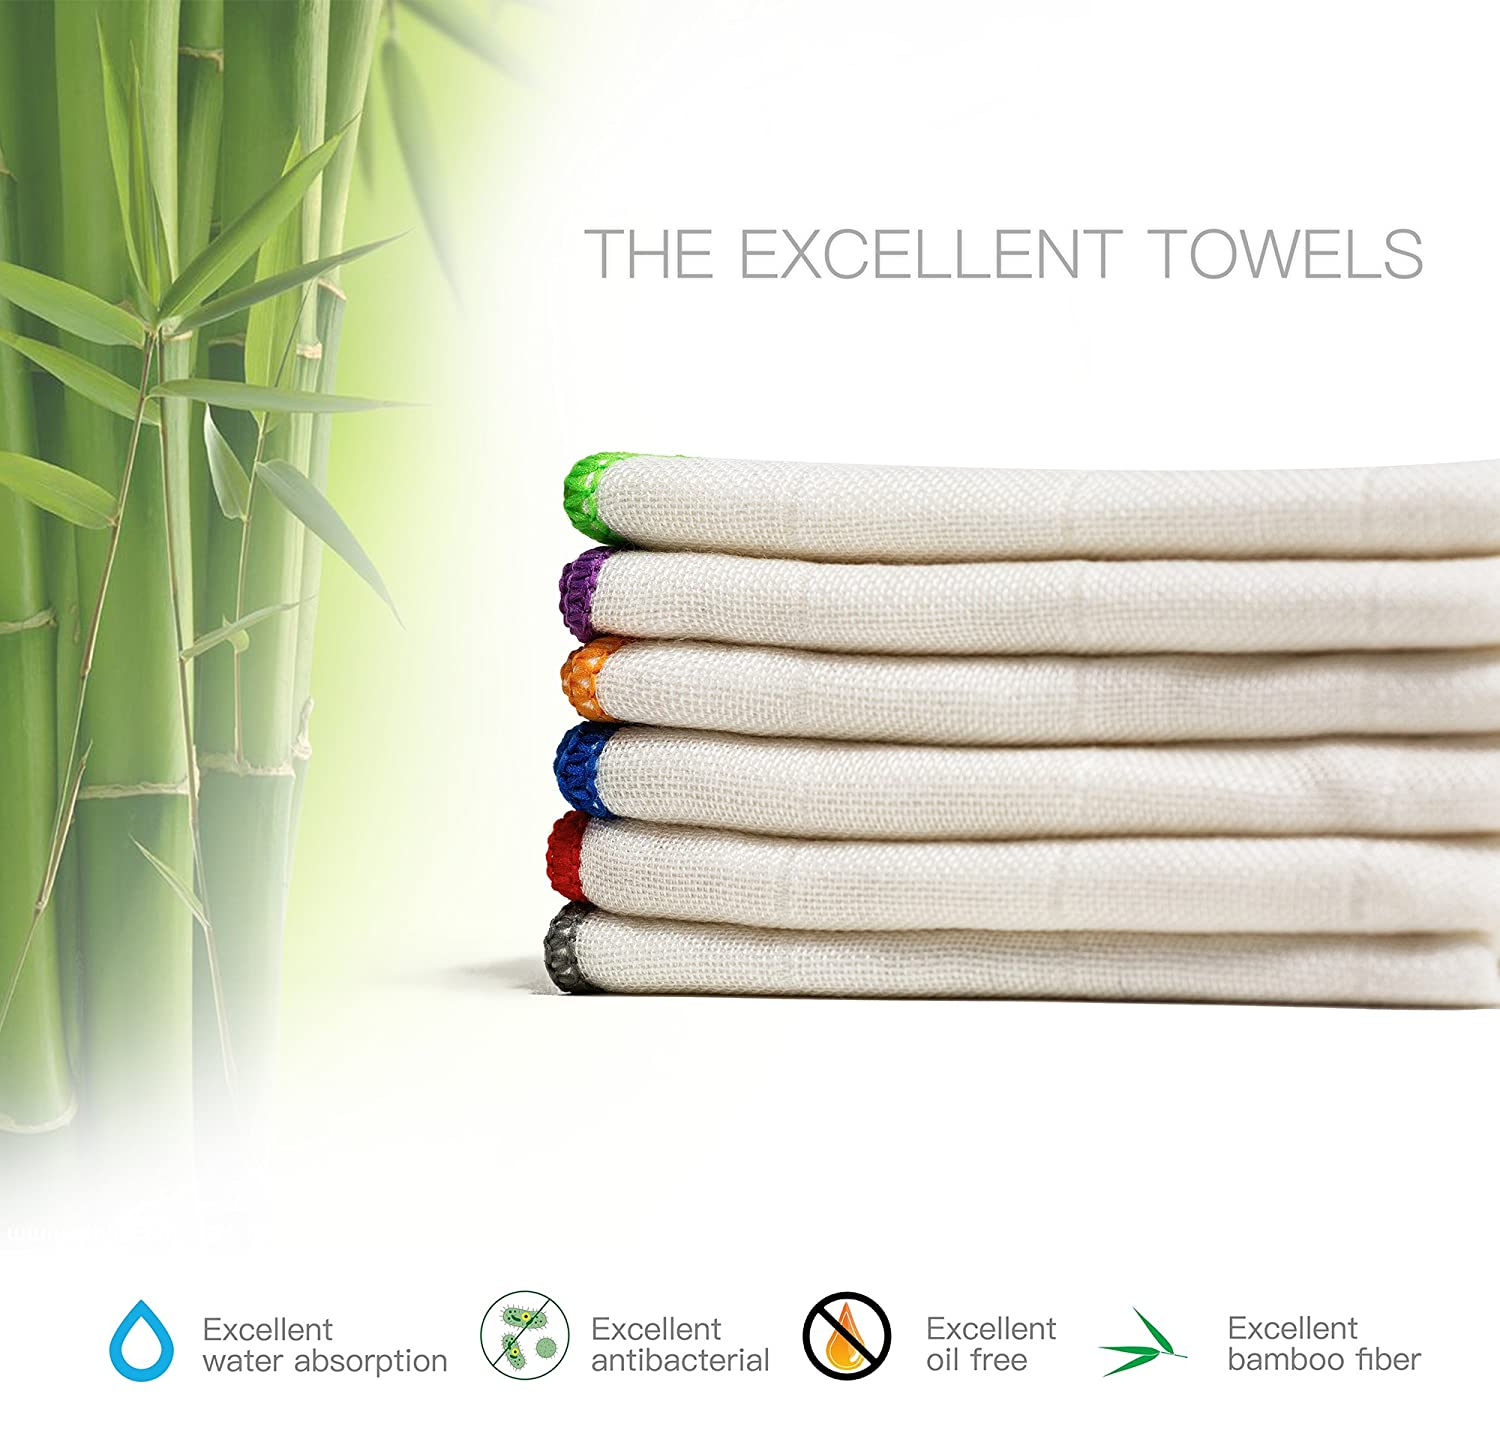 100% Bamboo Kitchen Dish Cloths (6 Pack) White Washcloths Dish Towels, Cleaning Cloths & Dish Rags(12 x 12 Inch), Ultra Absorbent Better Than Cotton BONDRE